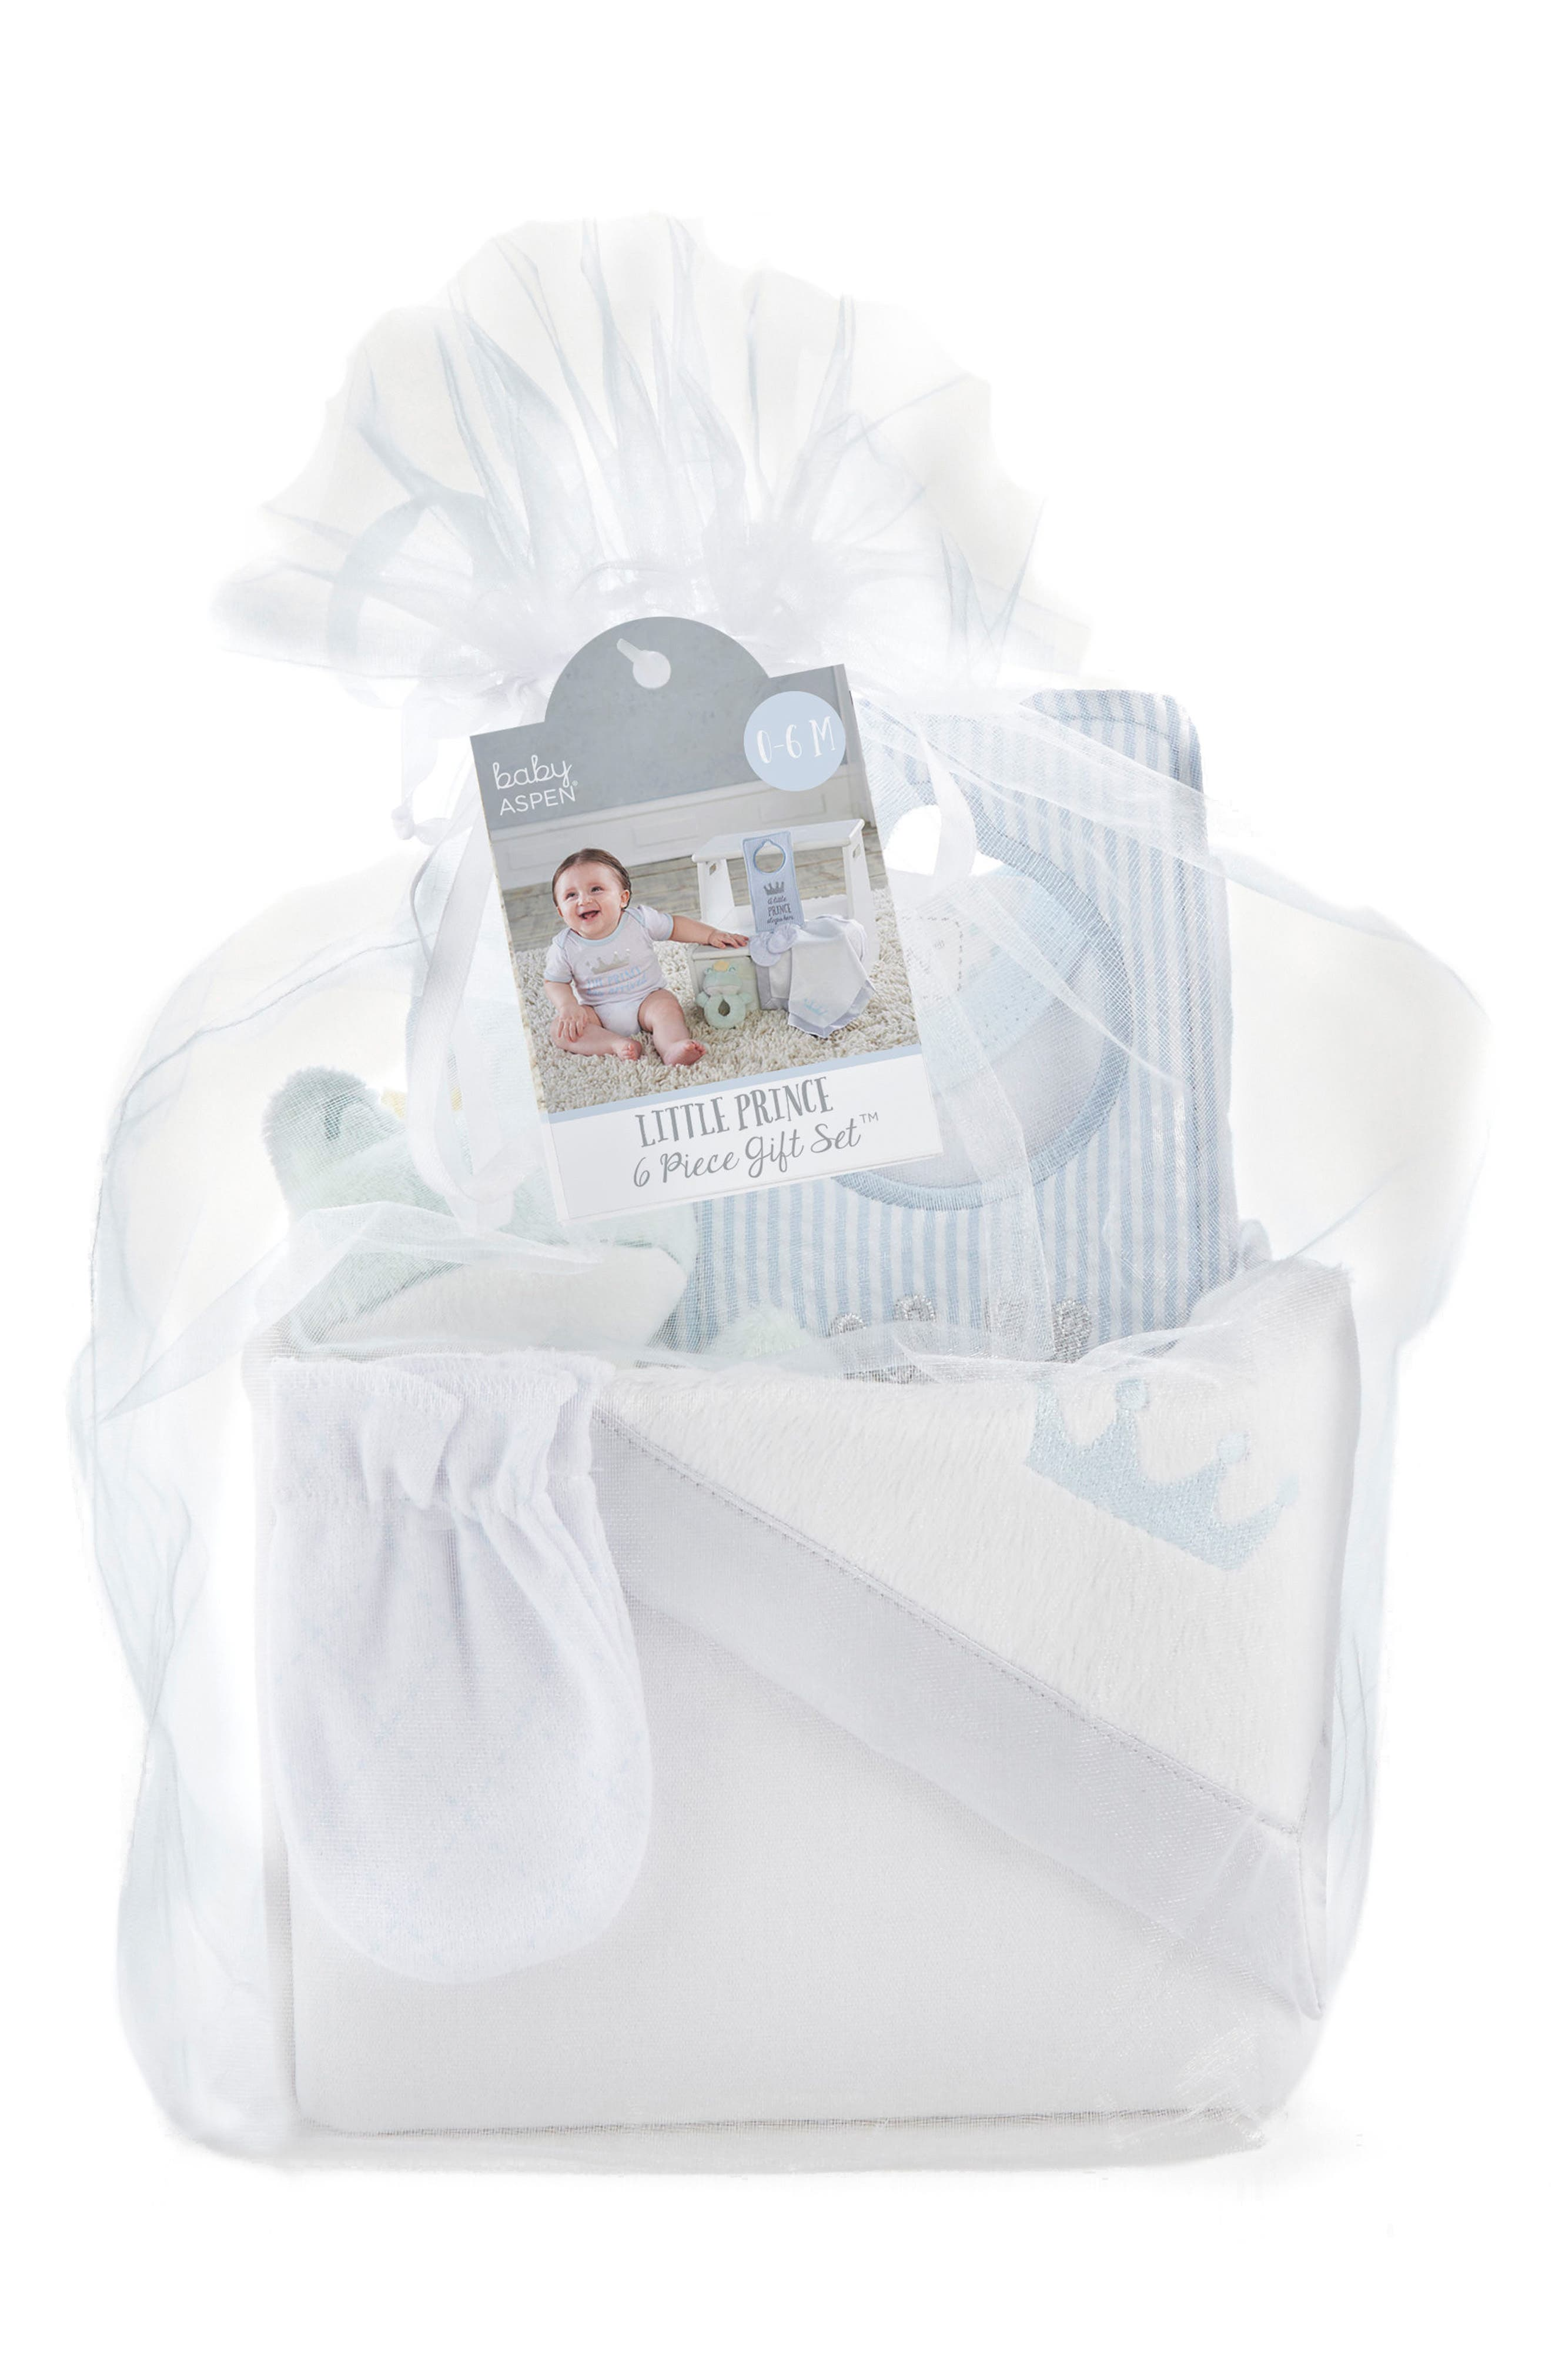 BABY ASPEN,                             Little Prince Welcome Home Gift Set,                             Main thumbnail 1, color,                             110